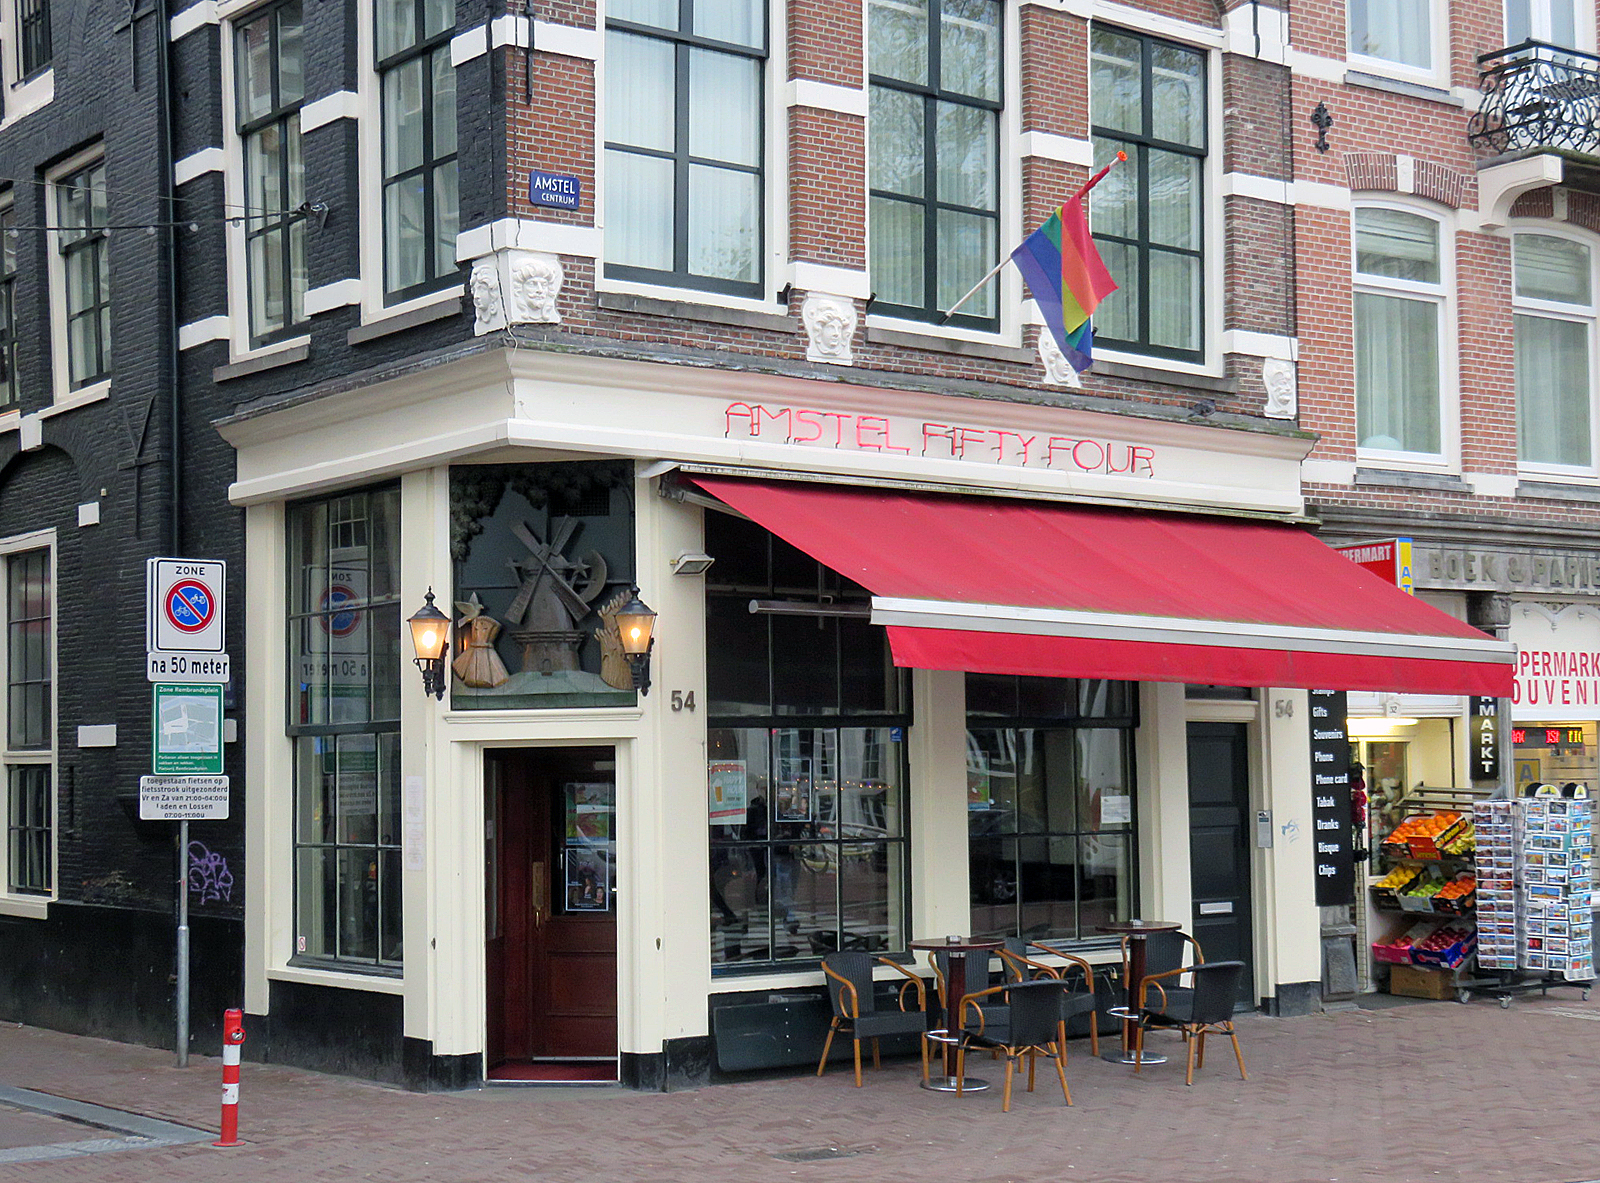 I, the copyright holder of this work, hereby publish it under the following license: English Gay bar Amstel Fifty Four, Amstel 54 in Amsterdam